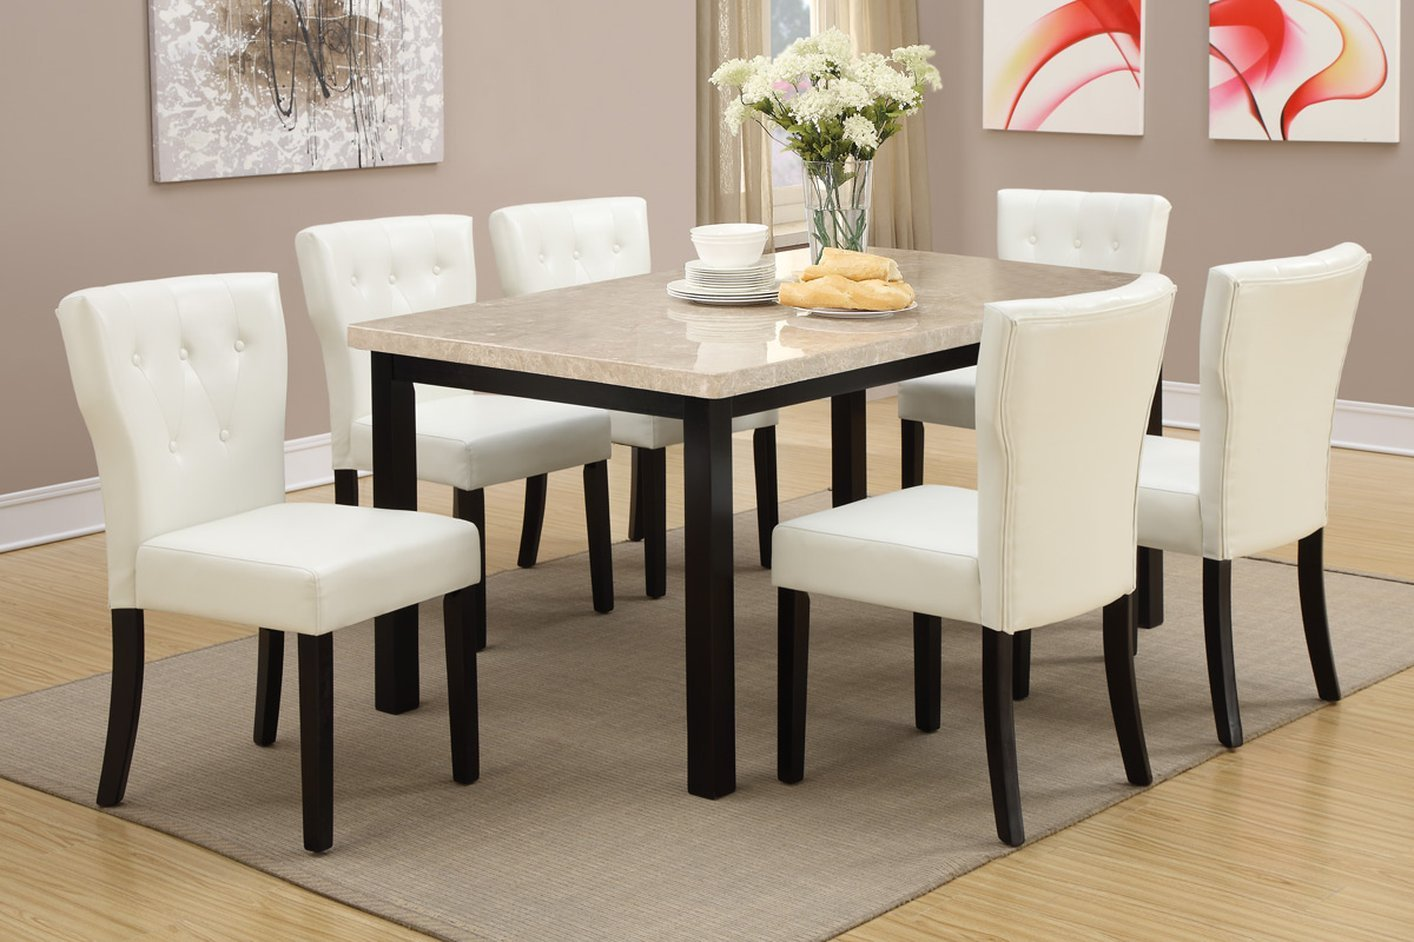 Brown Marble Dining Table Brown Marble Dining Table ...